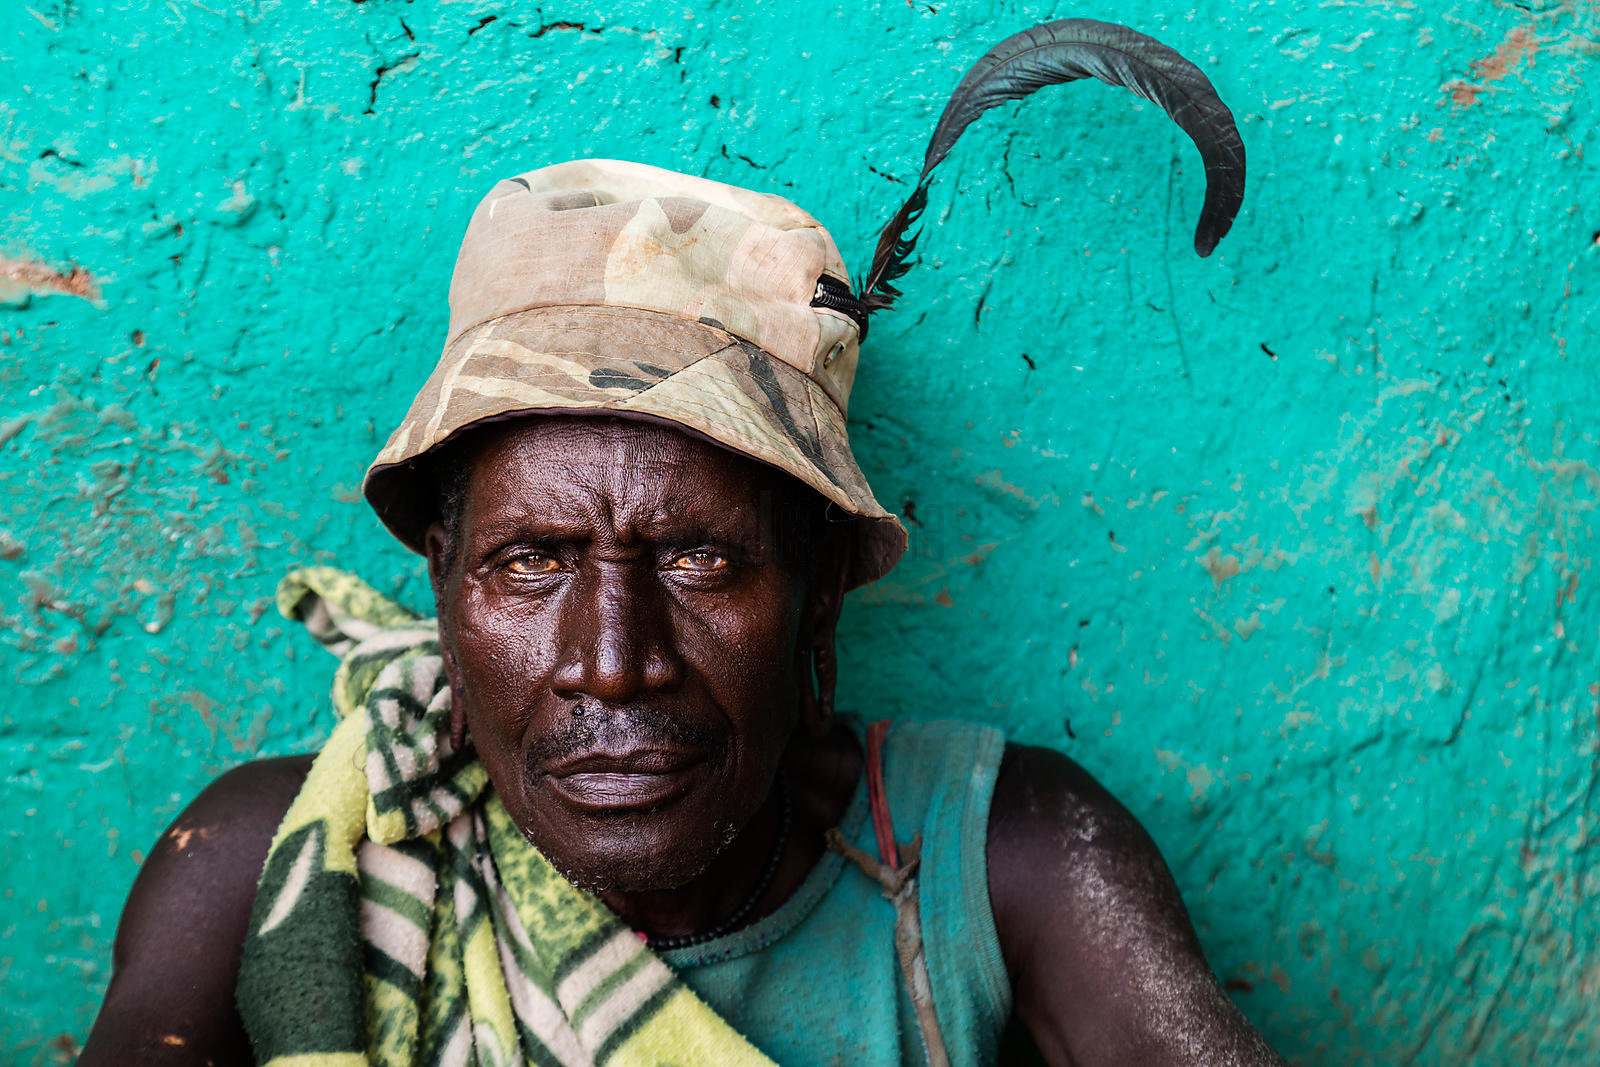 Portrait of a Surma Man with a Feather in his Hat